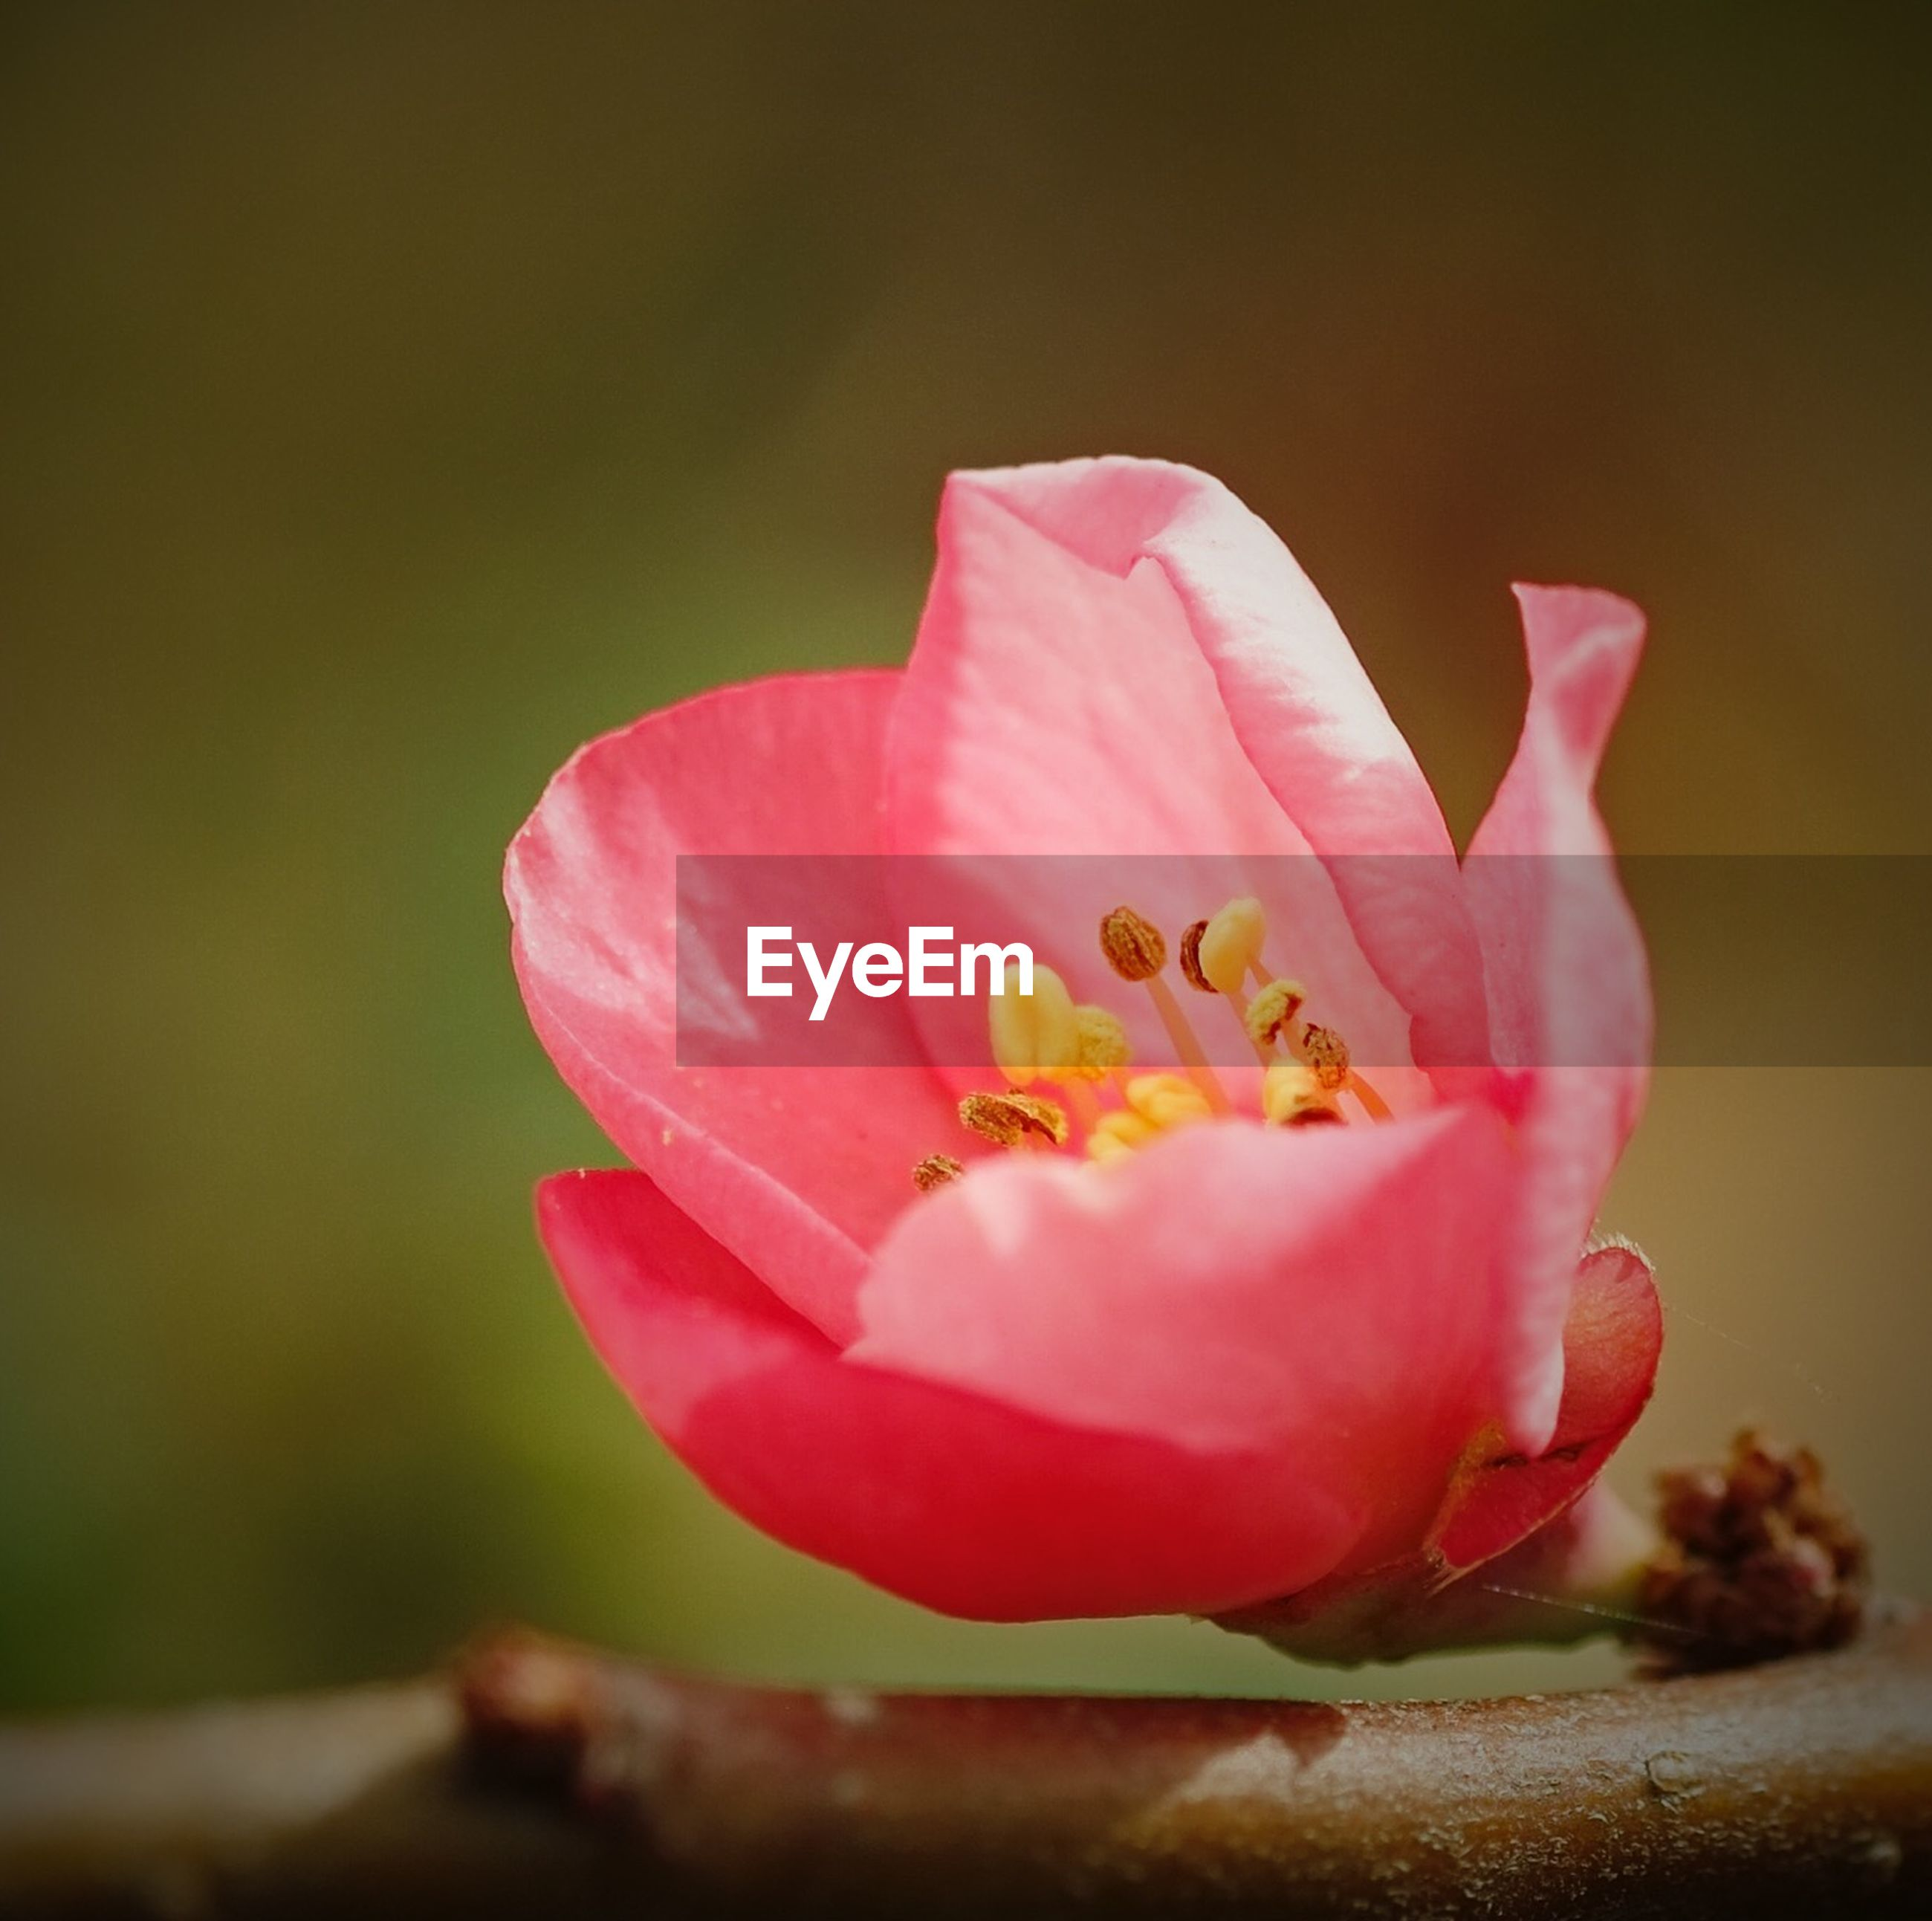 flower, petal, flower head, freshness, fragility, single flower, close-up, beauty in nature, growth, focus on foreground, pink color, nature, blooming, stamen, in bloom, pollen, blossom, selective focus, plant, botany